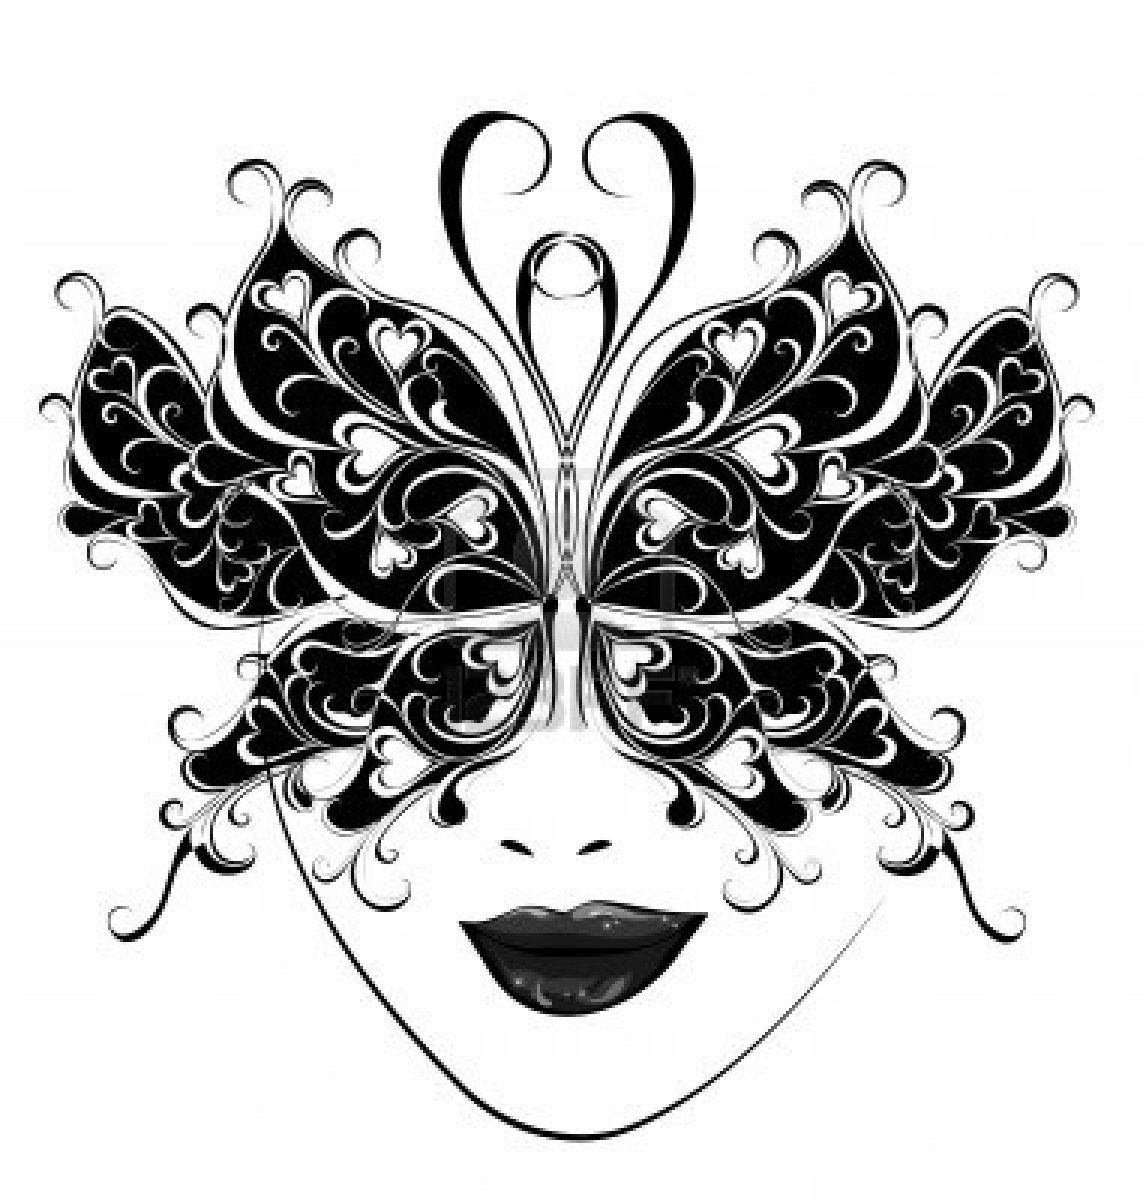 small resolution of illustration of carnival mask butterfly masks for a masquerade vector art clipart and stock vectors image 16258130